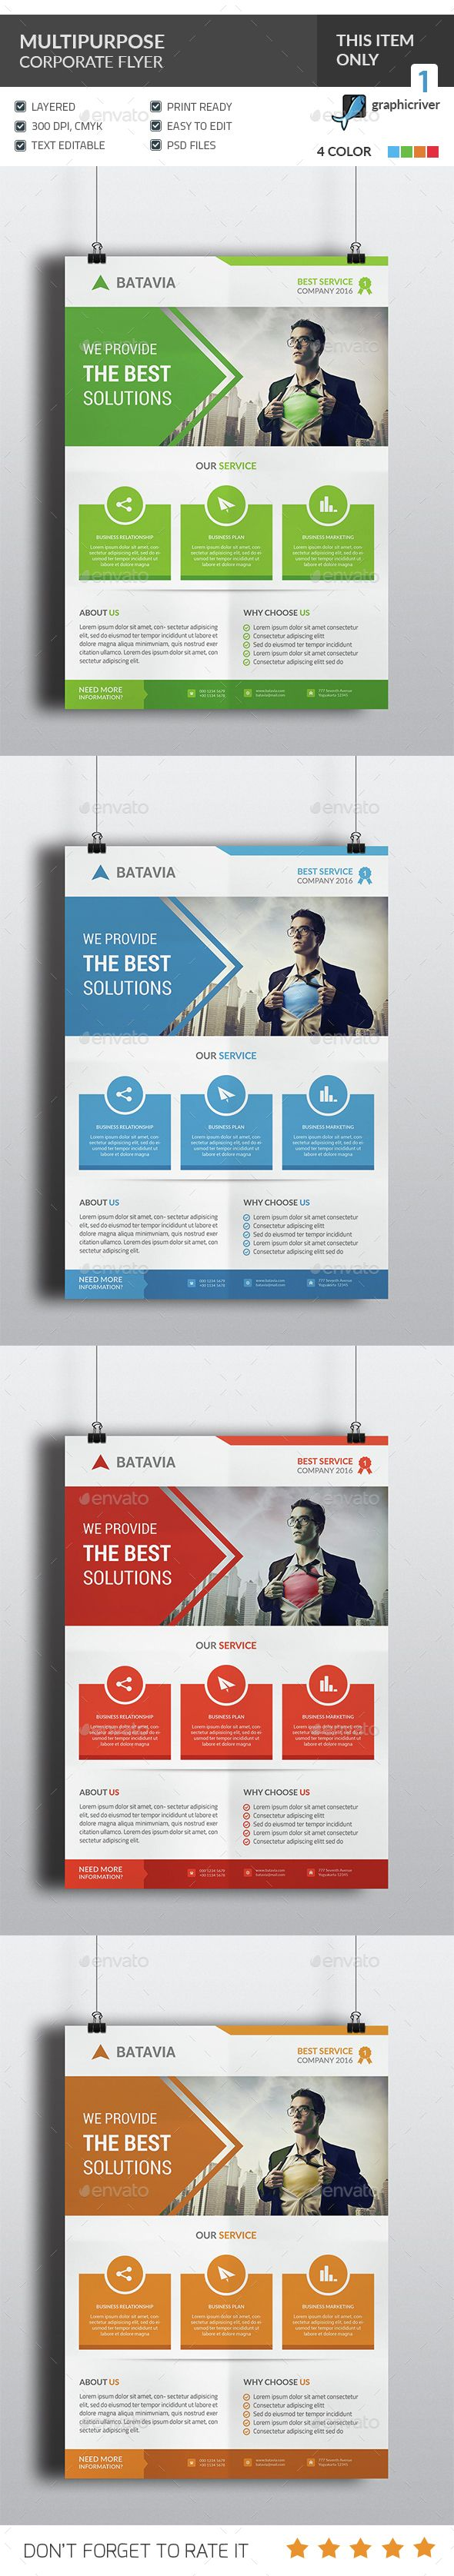 Best CorporateBusiness Design Images On   Brochures